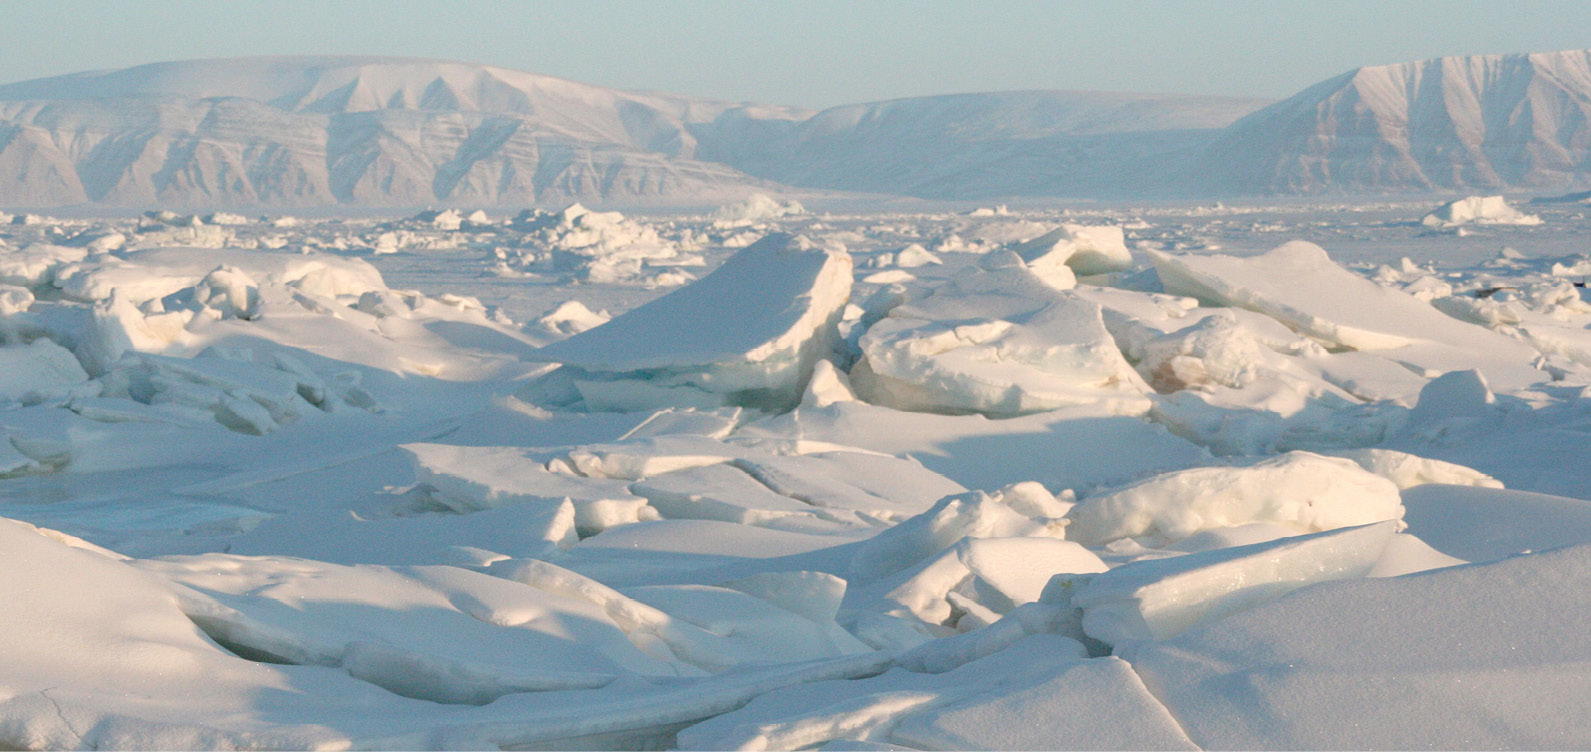 Unmanned aircraft are not stymied by the Arctic's thick, fractured sea ice. National Snow & Ice Data Center